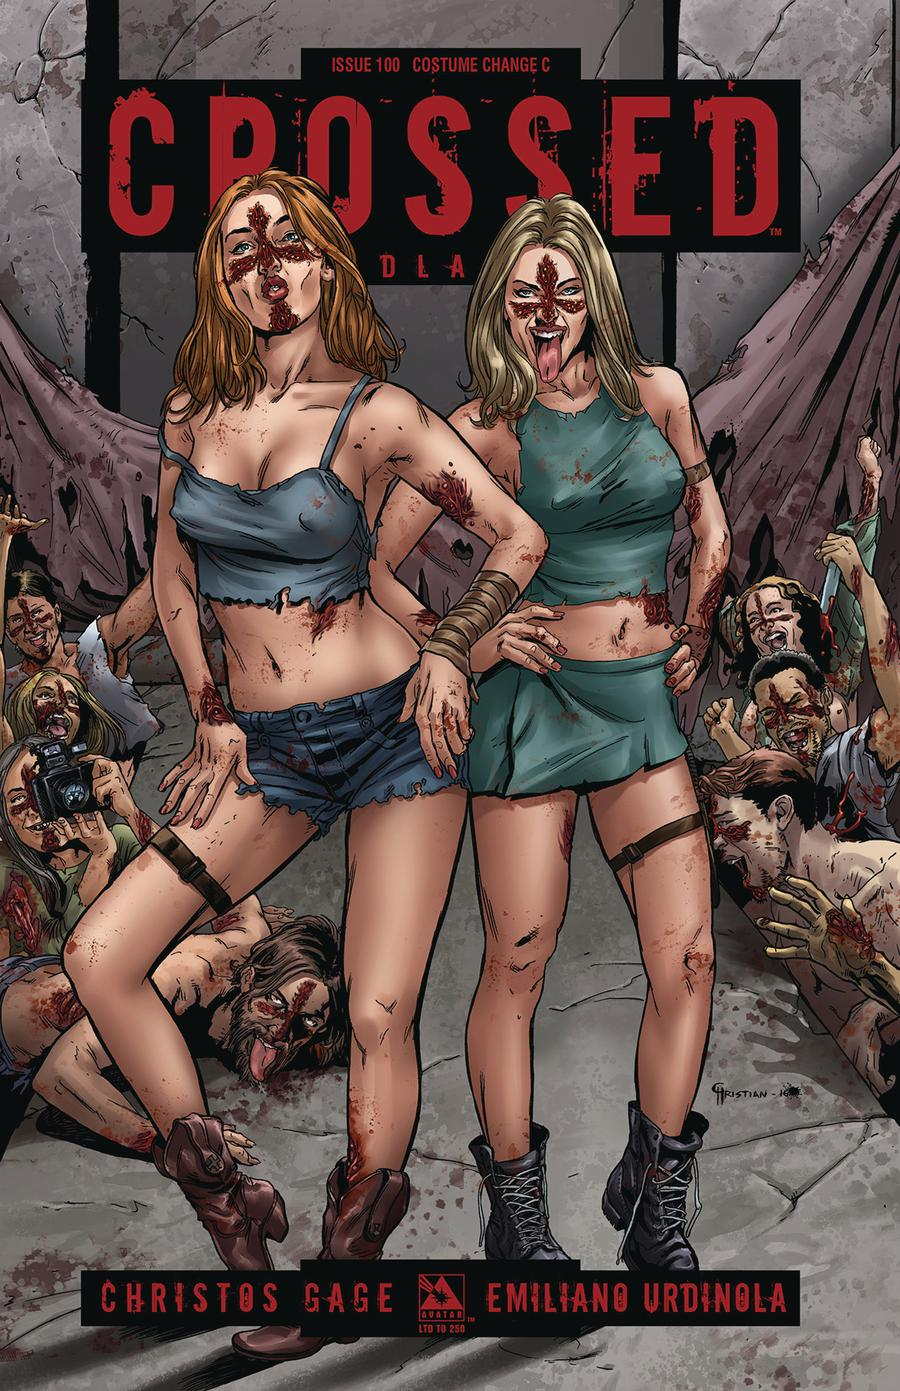 Crossed Badlands #100 Cover L Costume Change C Cover